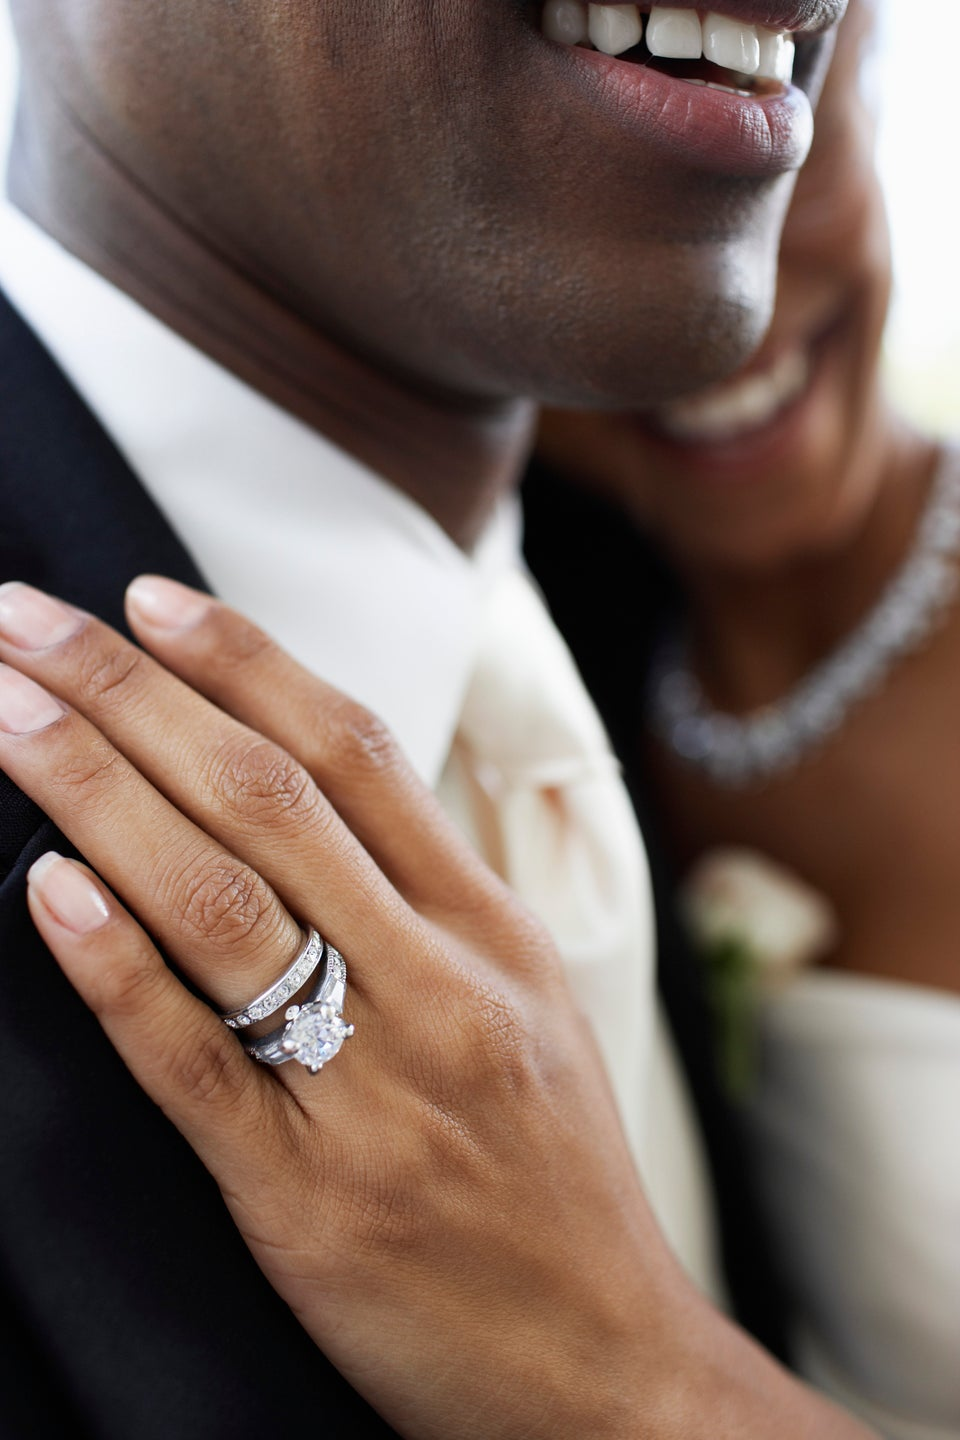 13-Year-Olds Can No Longer Legally Marry in Virginia (Thankfully)